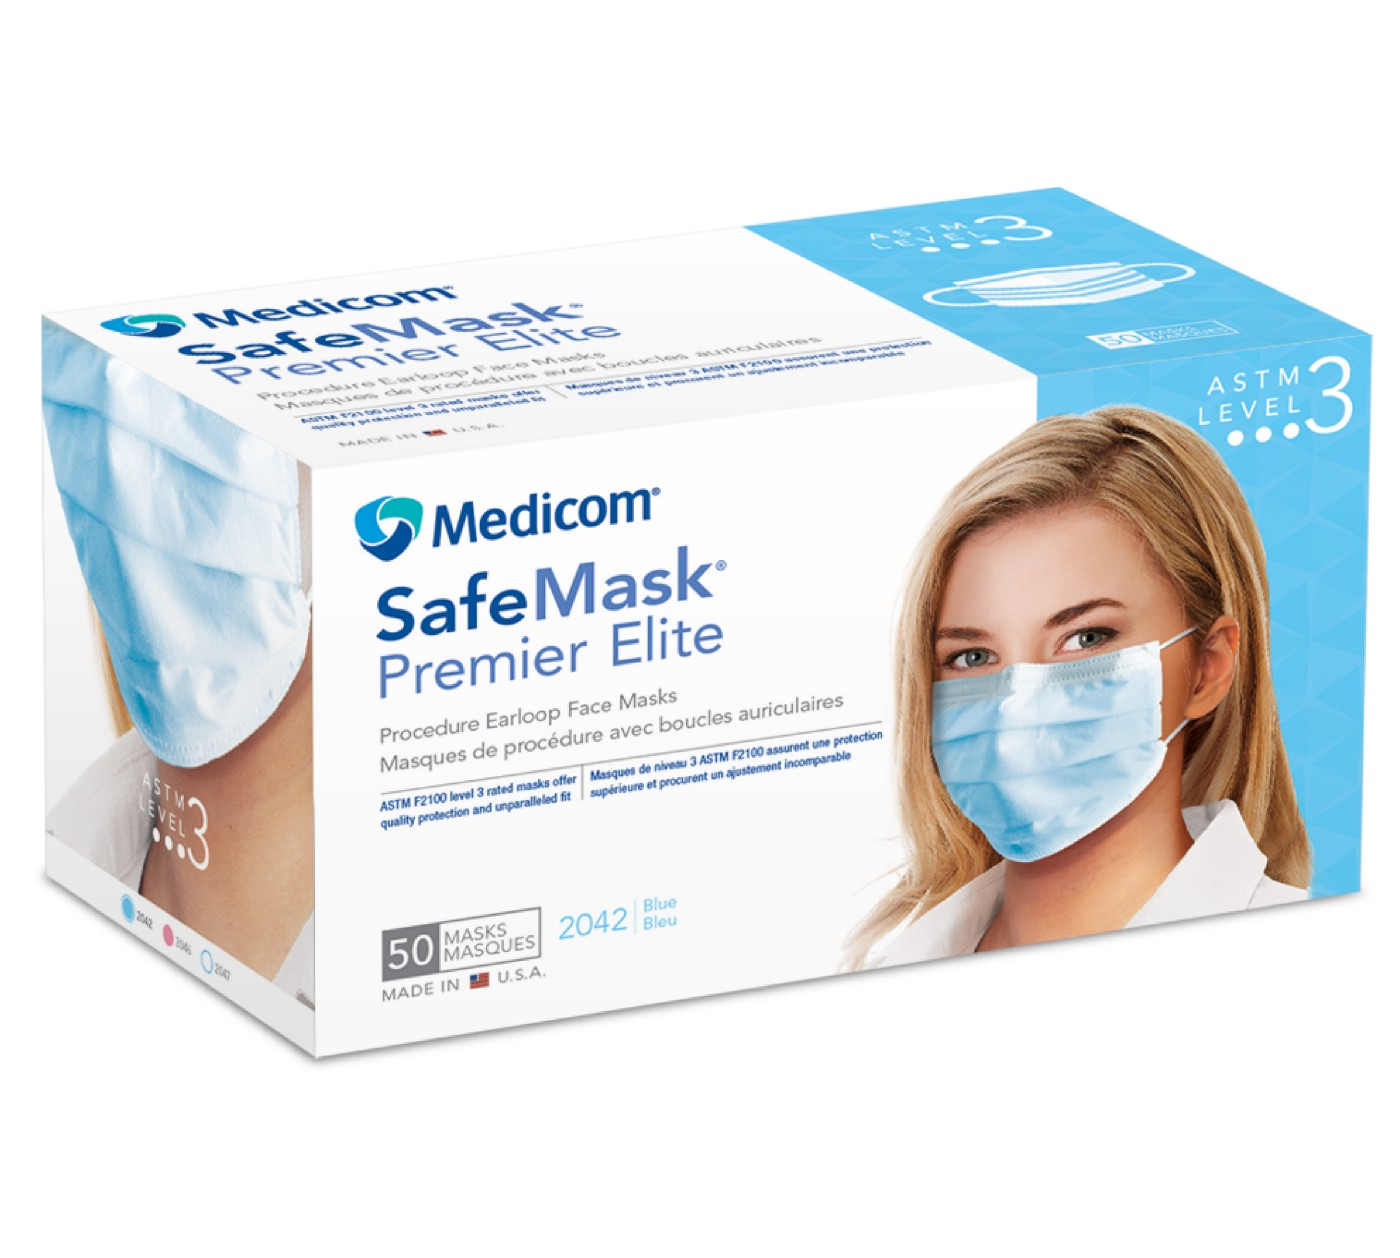 Buy N95 Respirator Mask Online , Buy Level 3 3 Ply Surgical Face Mask, Buy Corona Virus Mask